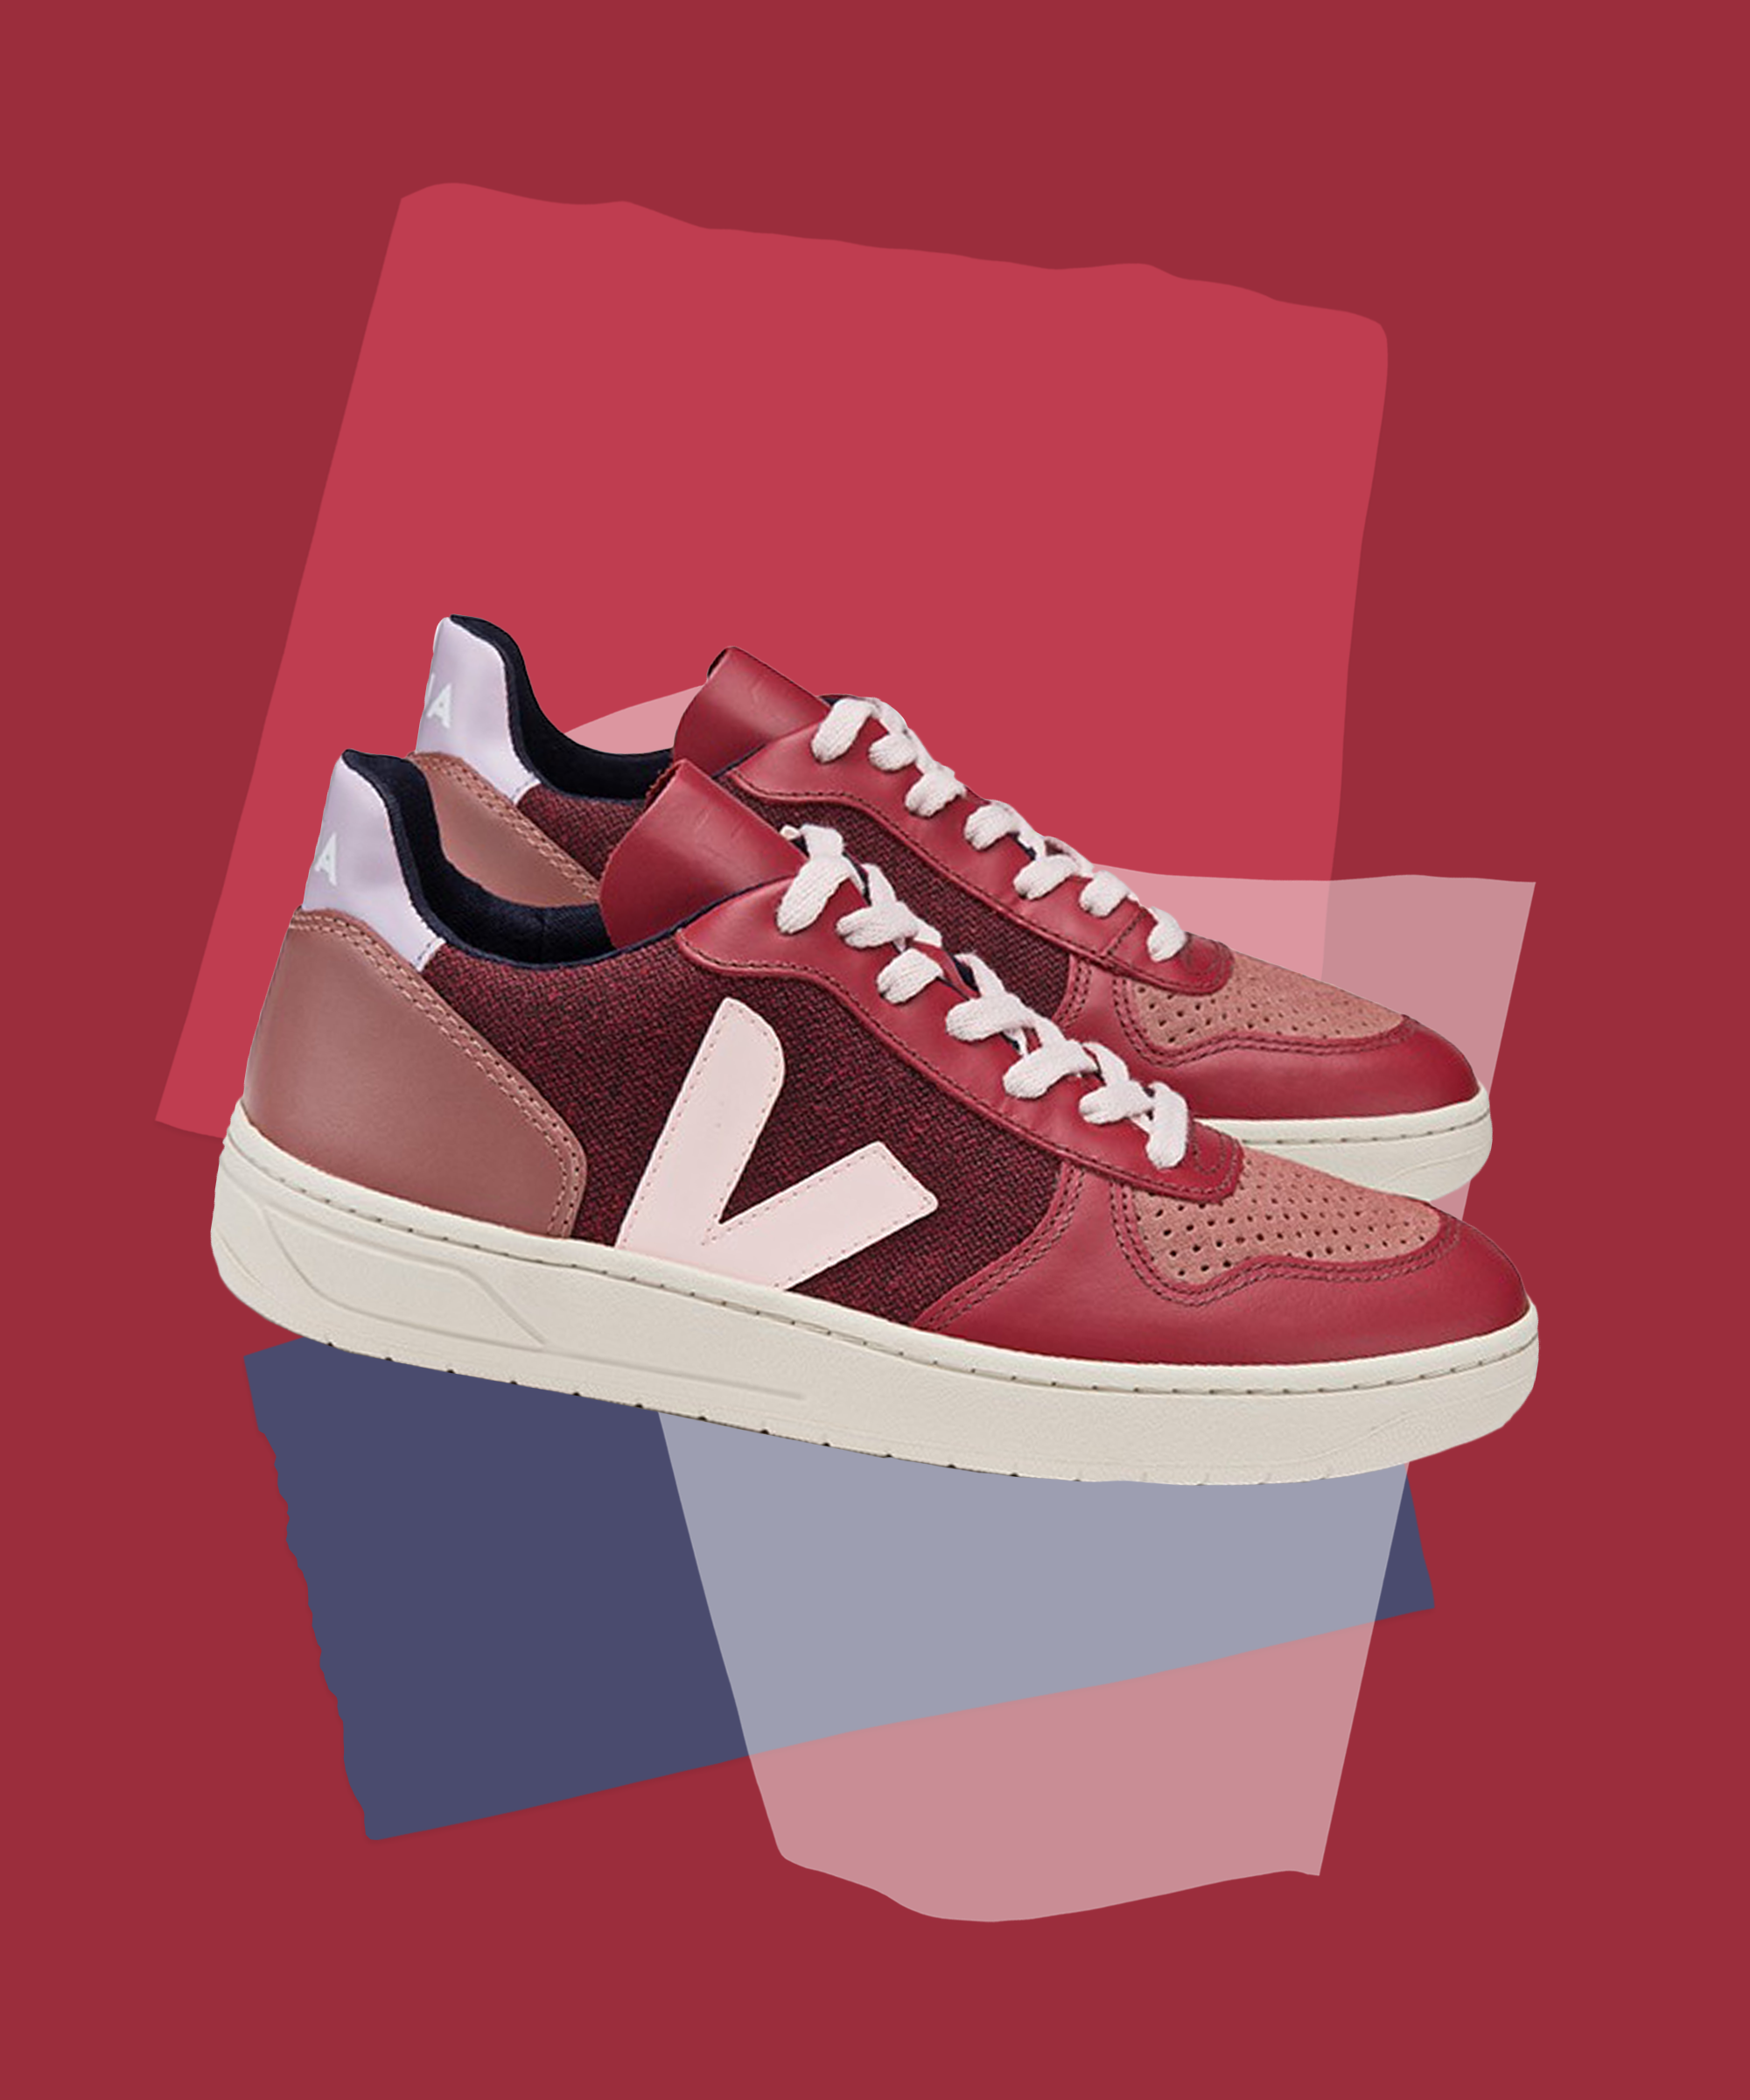 Best Retro Style Sneakers & Trainers 2019